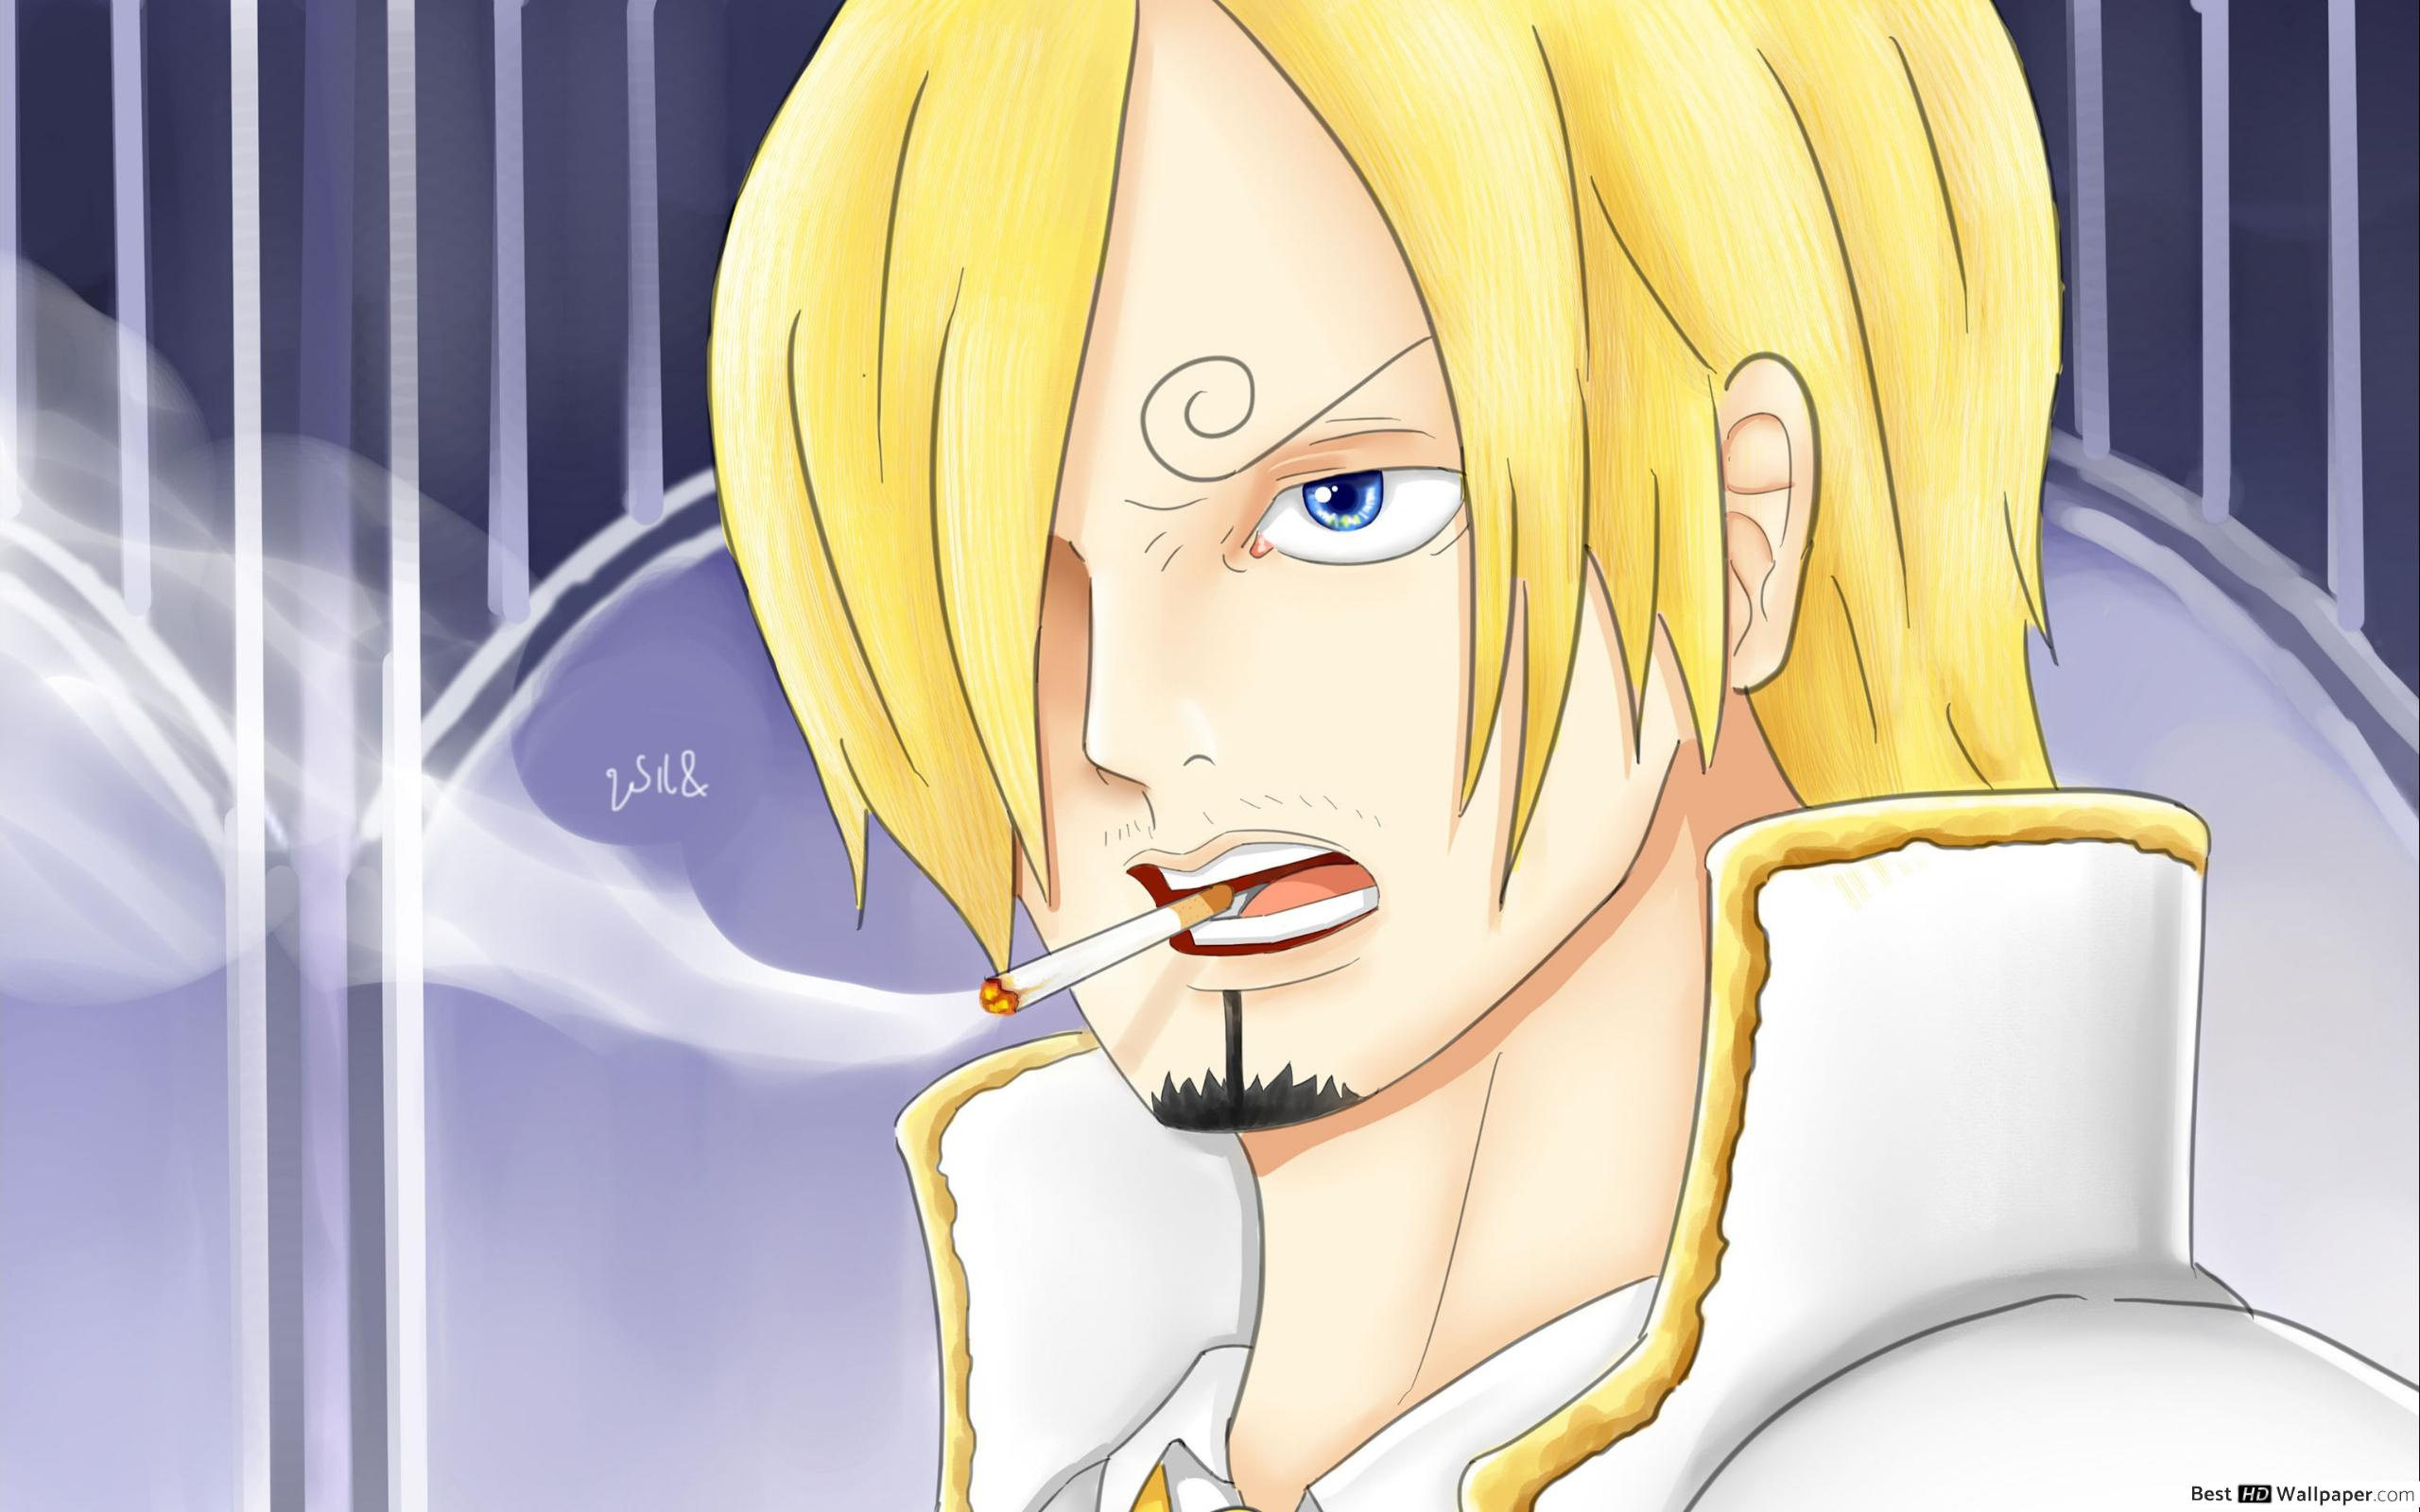 Sanji Wallpaper Iphone Hd 2560x1600 Wallpaper Teahub Io